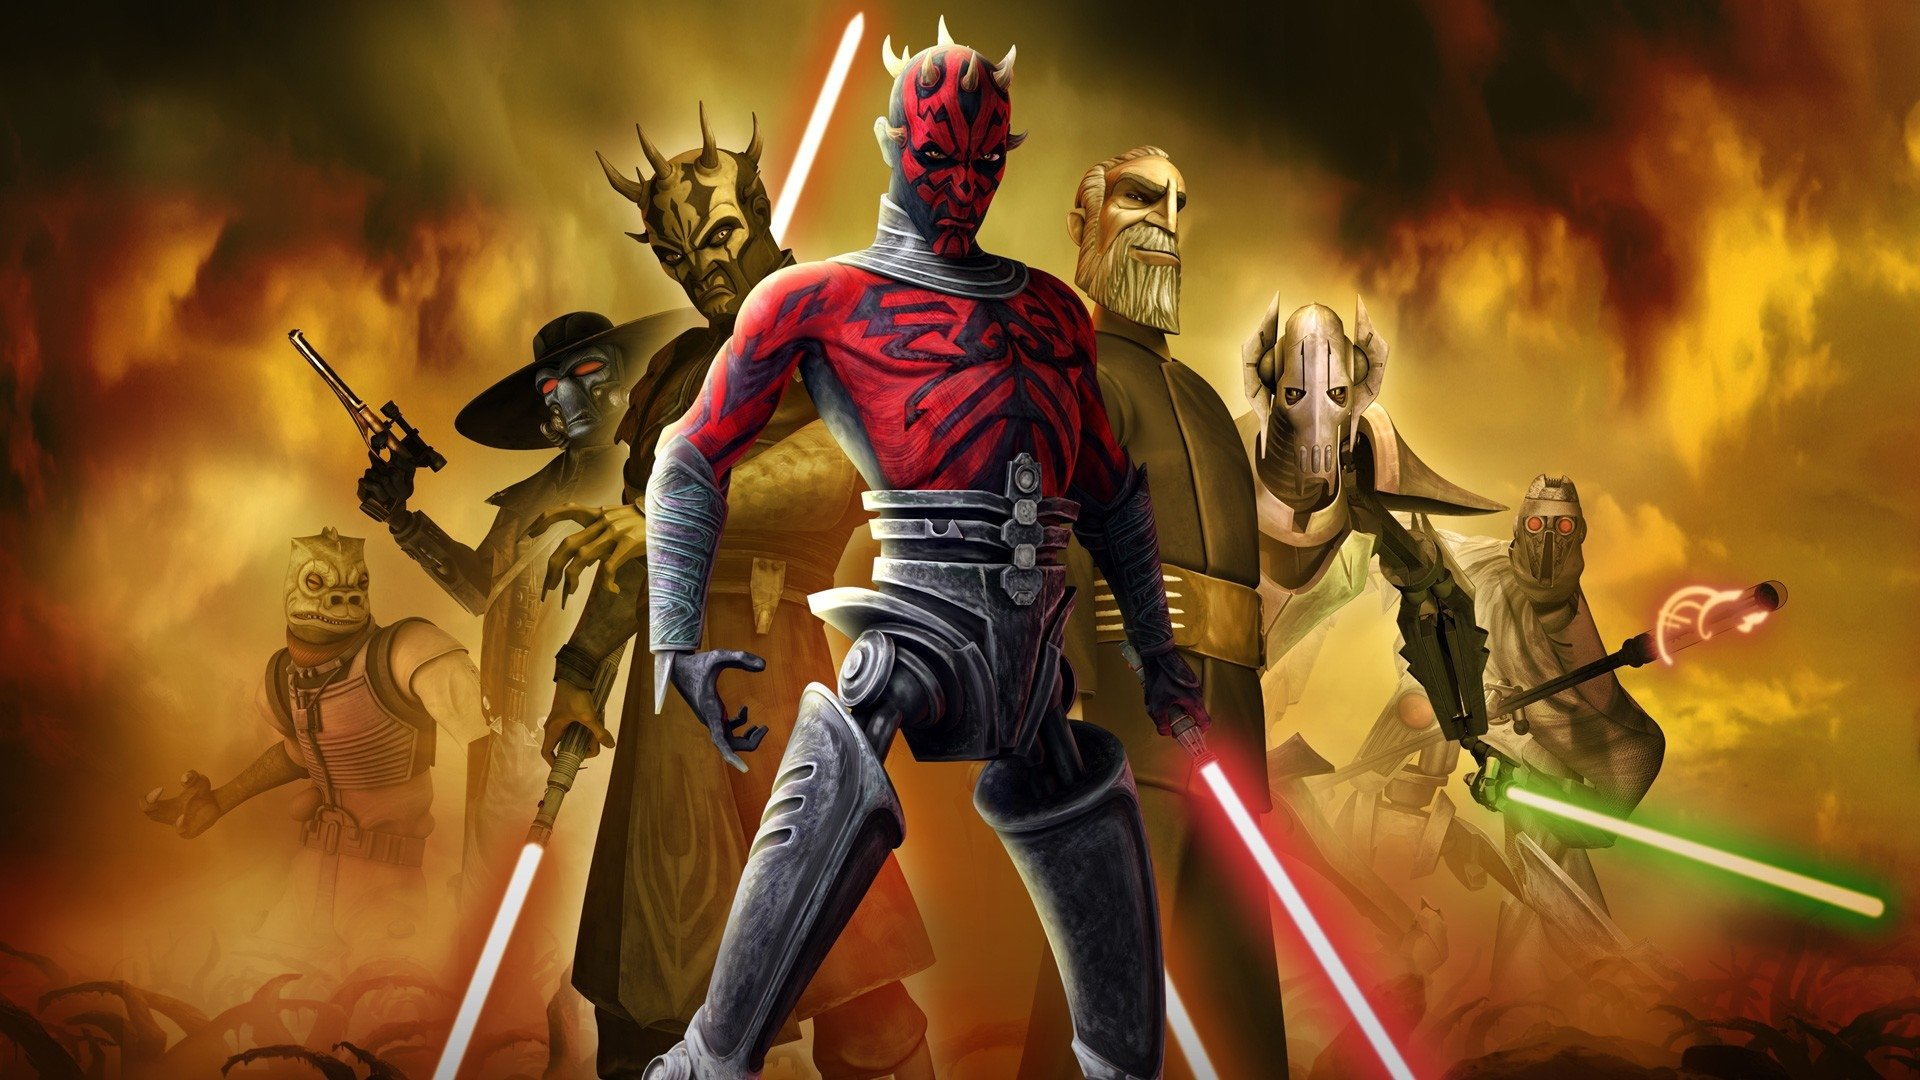 Free Download Star Wars The Clone Wars Full Hd Wallpaper And